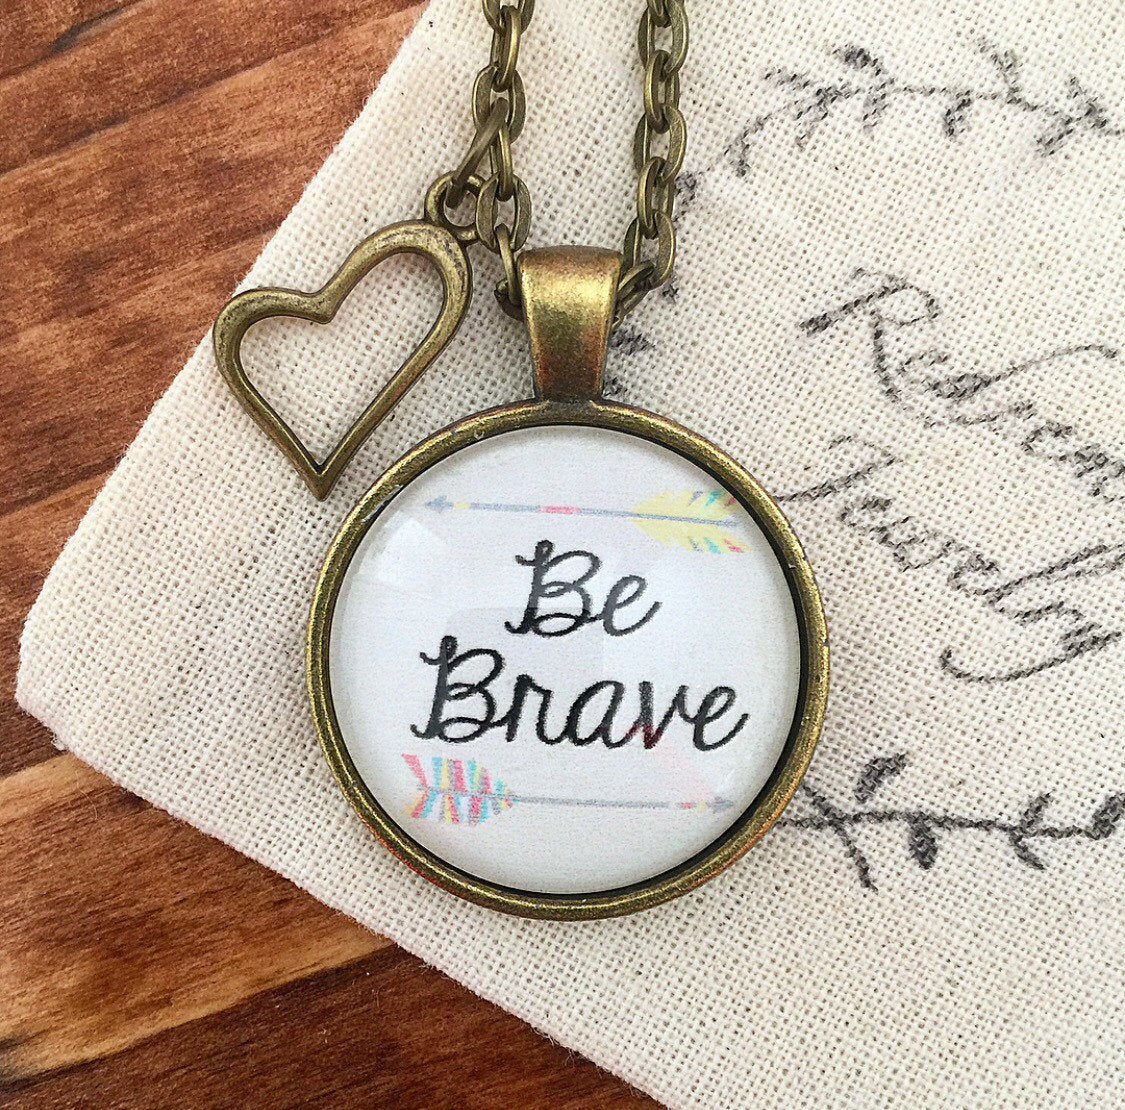 Be Brave Pendant Necklace - Redeemed Jewelry